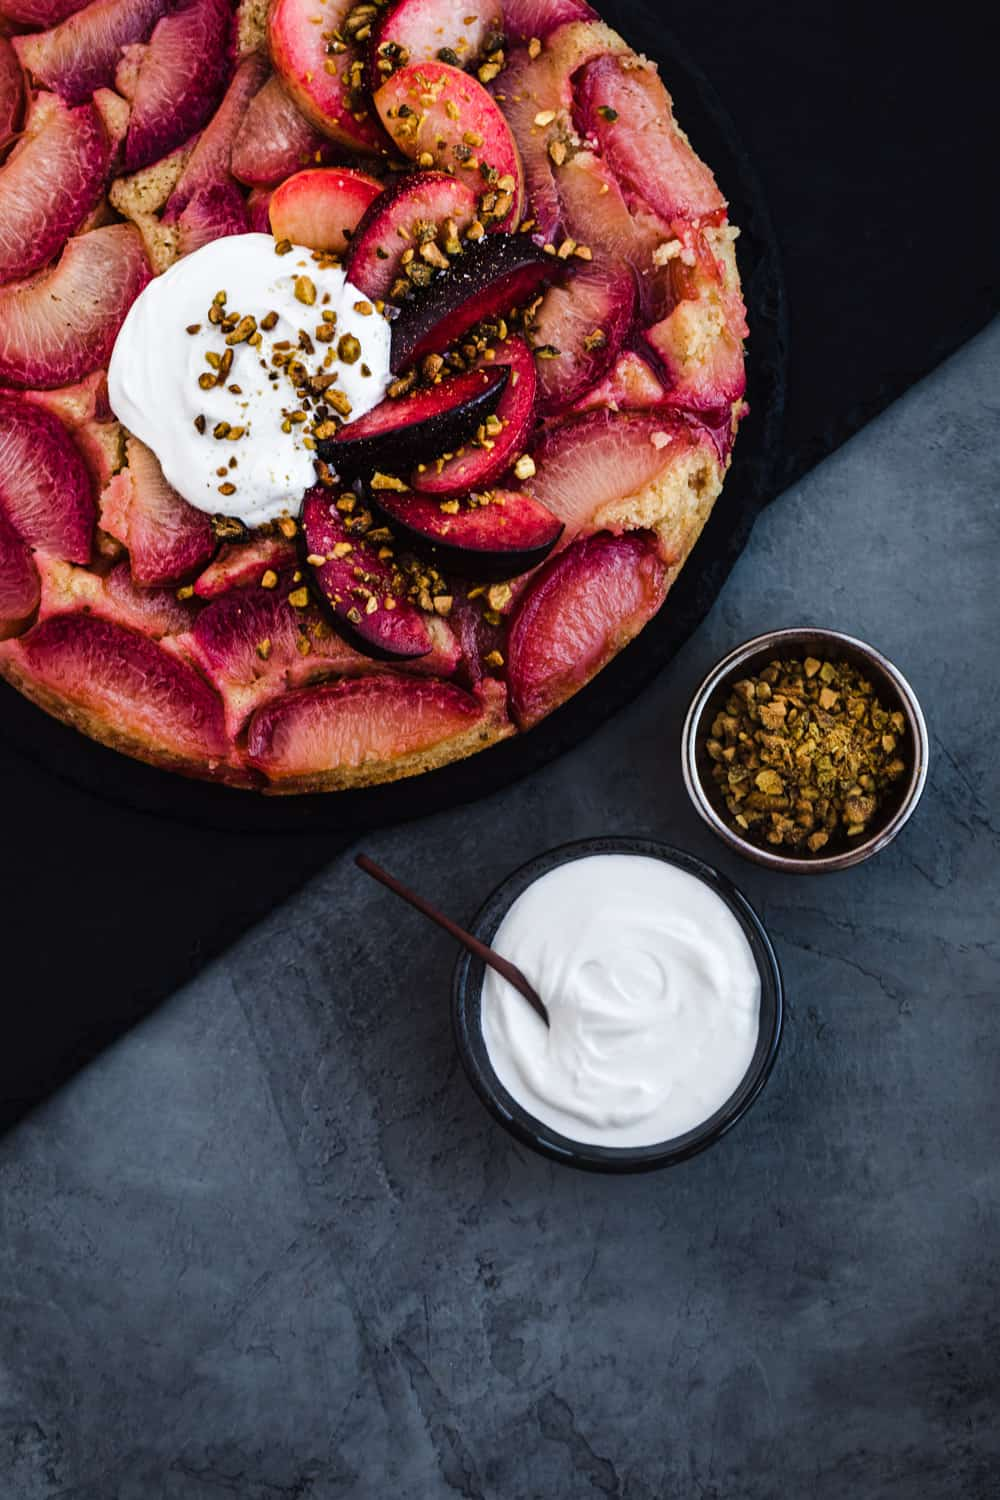 A stylized food shot of the plum upside down cake, a bowl of yogurt and a bowl of pistachios.